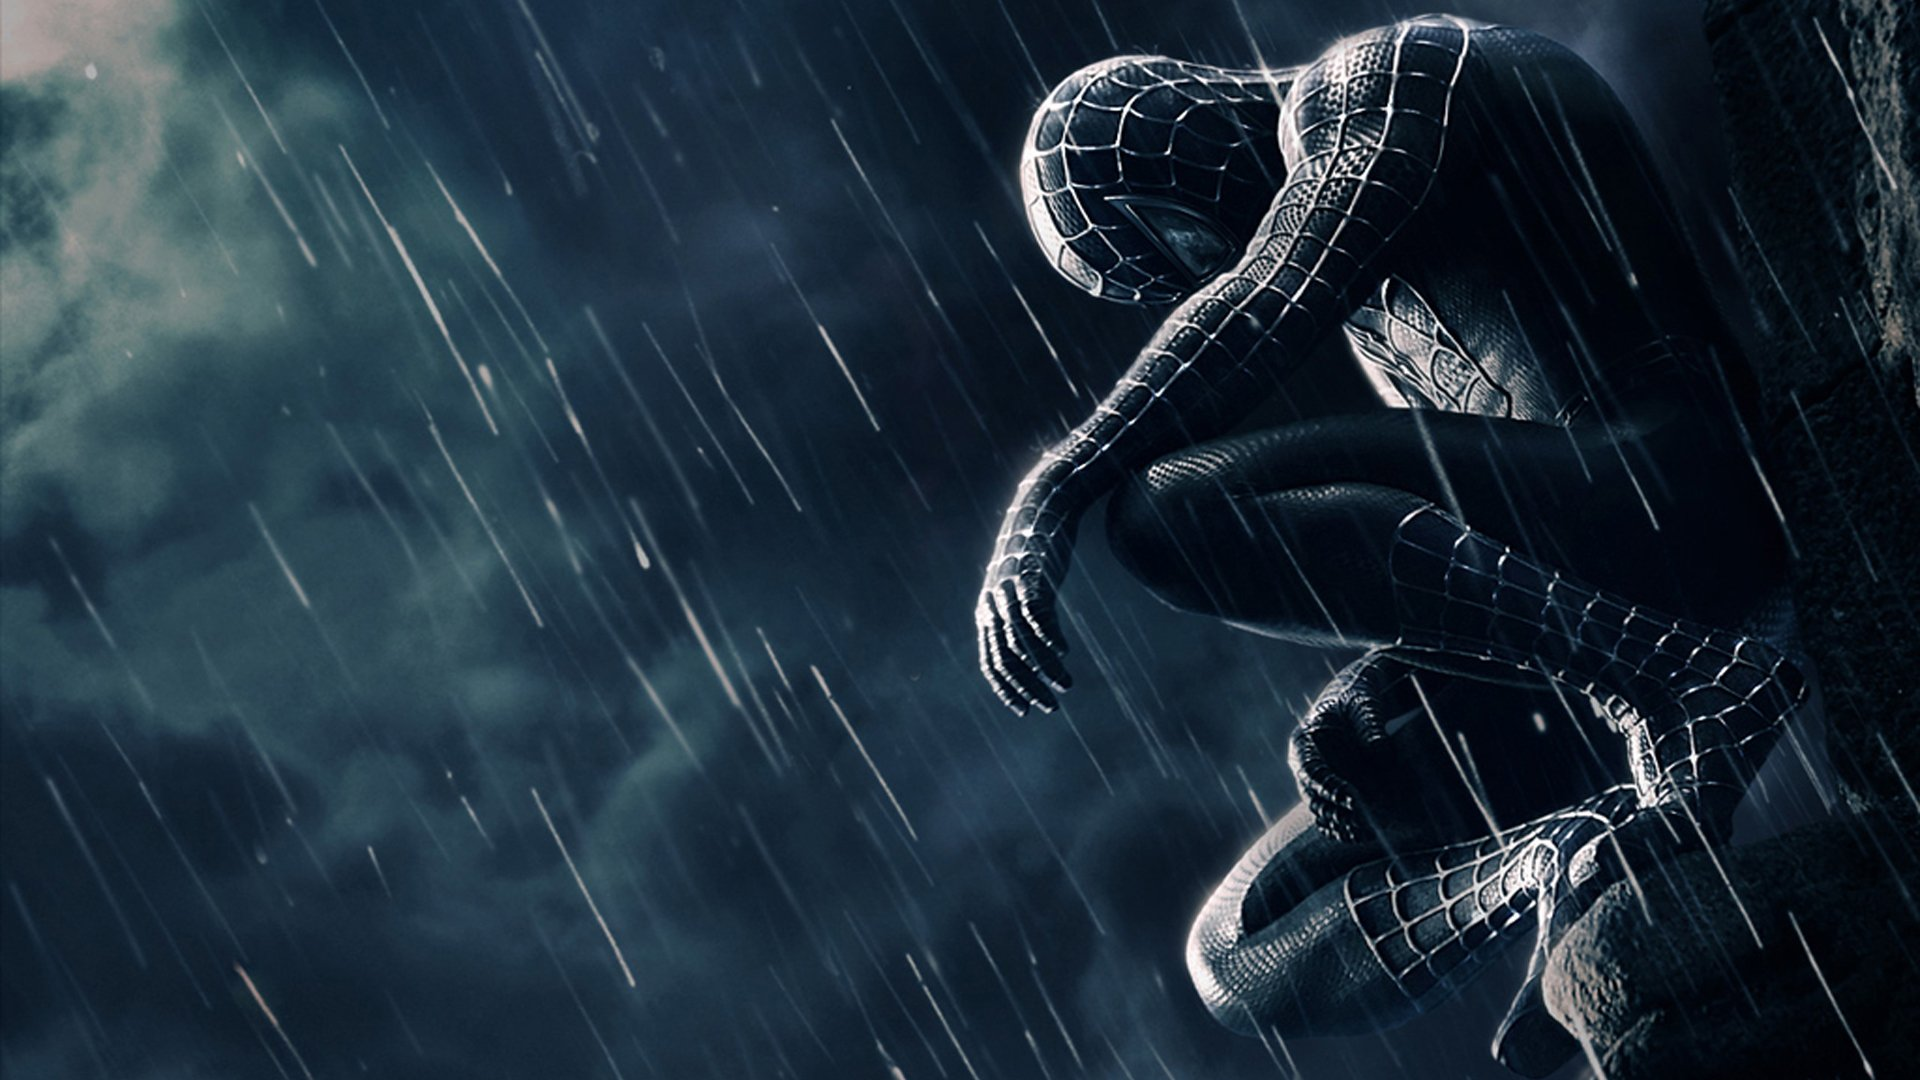 HD-SpiderMan-Edition-on-the-App-Store-1920×1080-Spiderman-Pics-wallpaper-wpc5805829